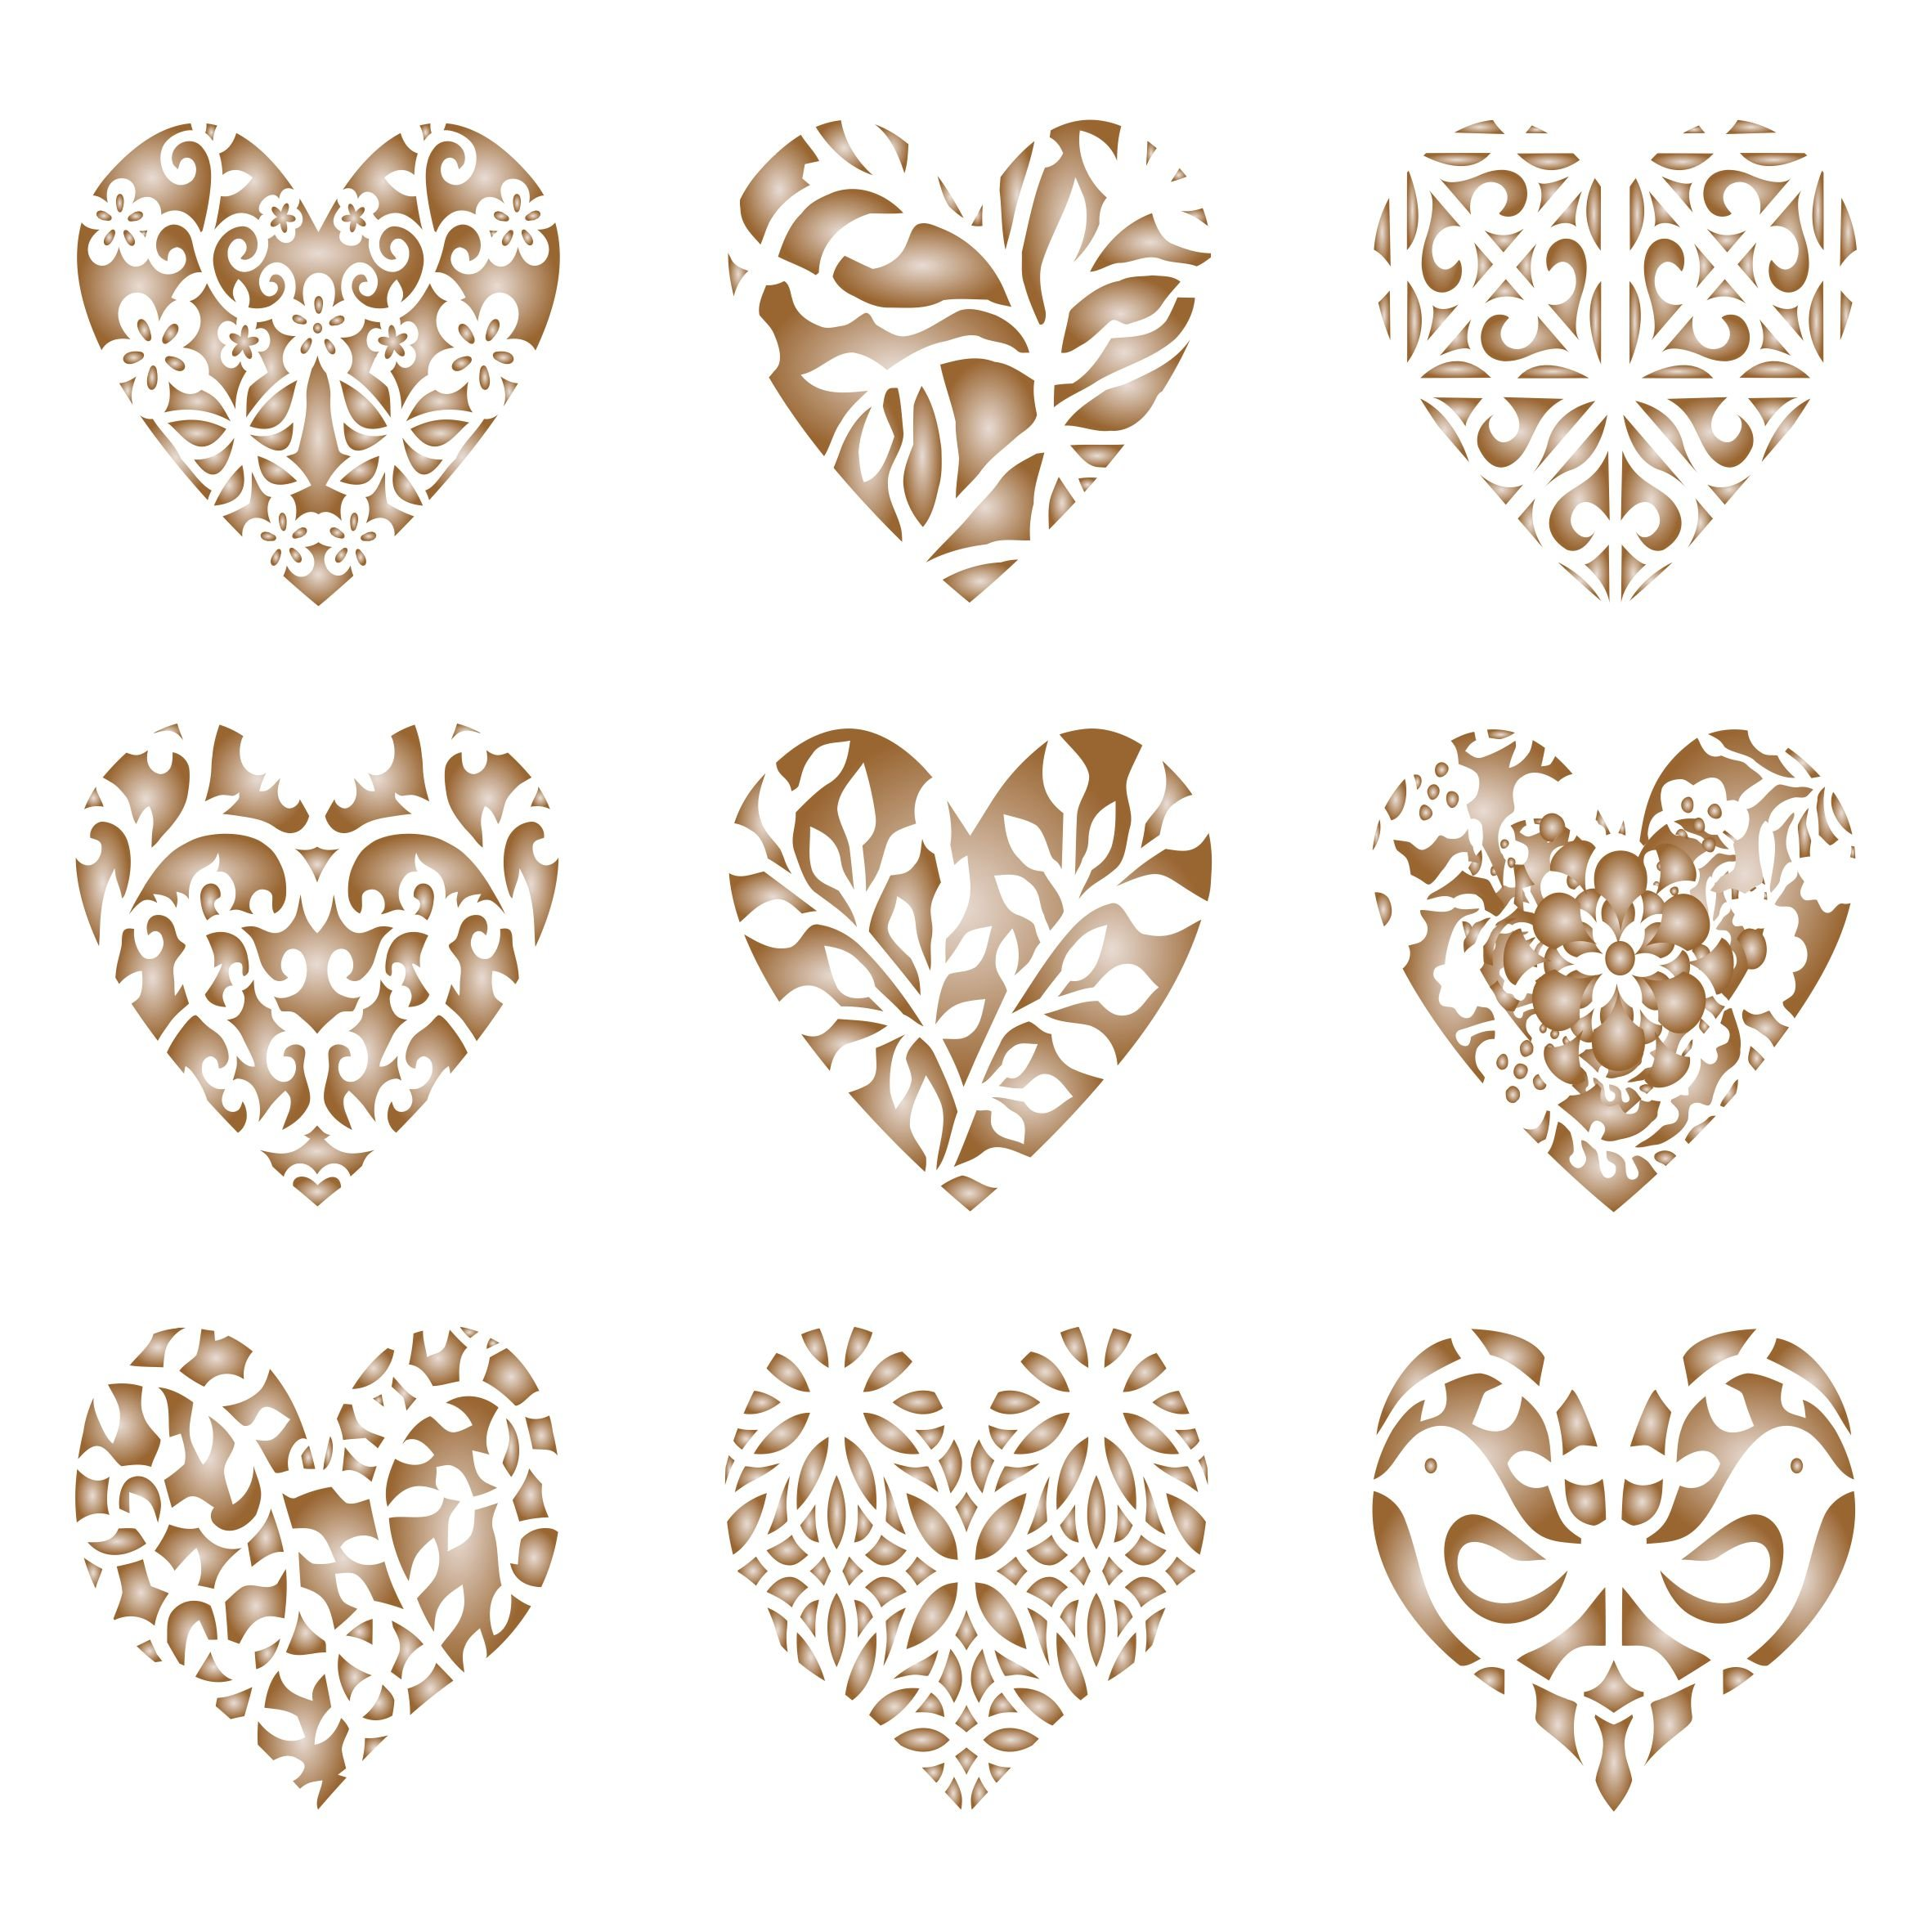 Heart Coffee Set Stencil - 9 Designs - Reusable Barista Stencils for Decorating Cappuccino Coffee Latte Cupcakes Cakes Cookies Scrapbooking Stenciling and more...